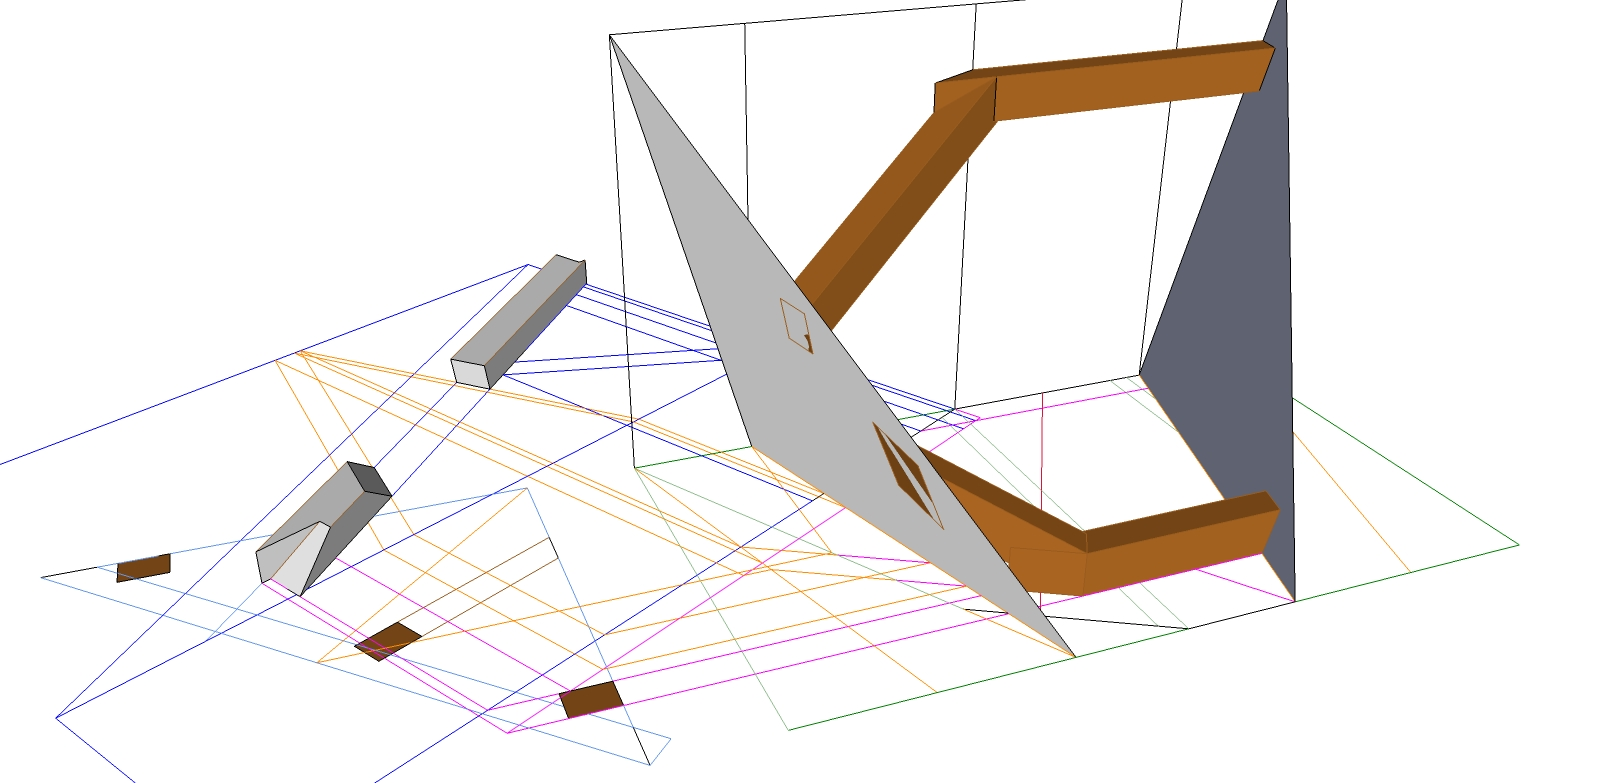 Roof Framing Geometry Pent Roof With Rising Purlin